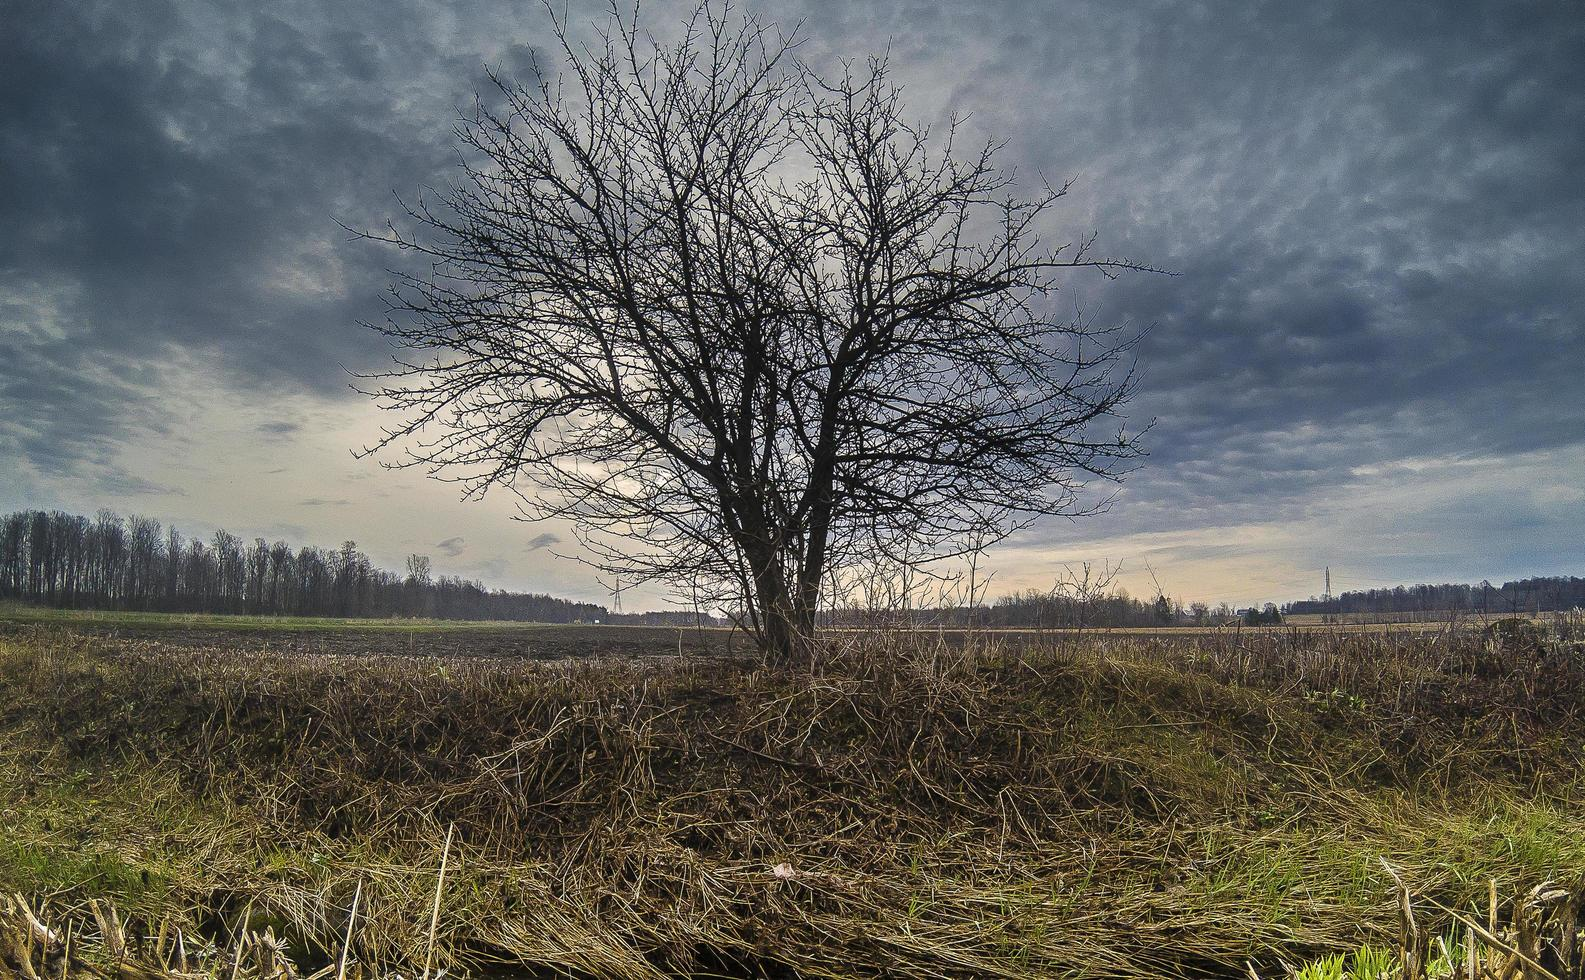 Single tree in a field against a cloudy blue sky photo